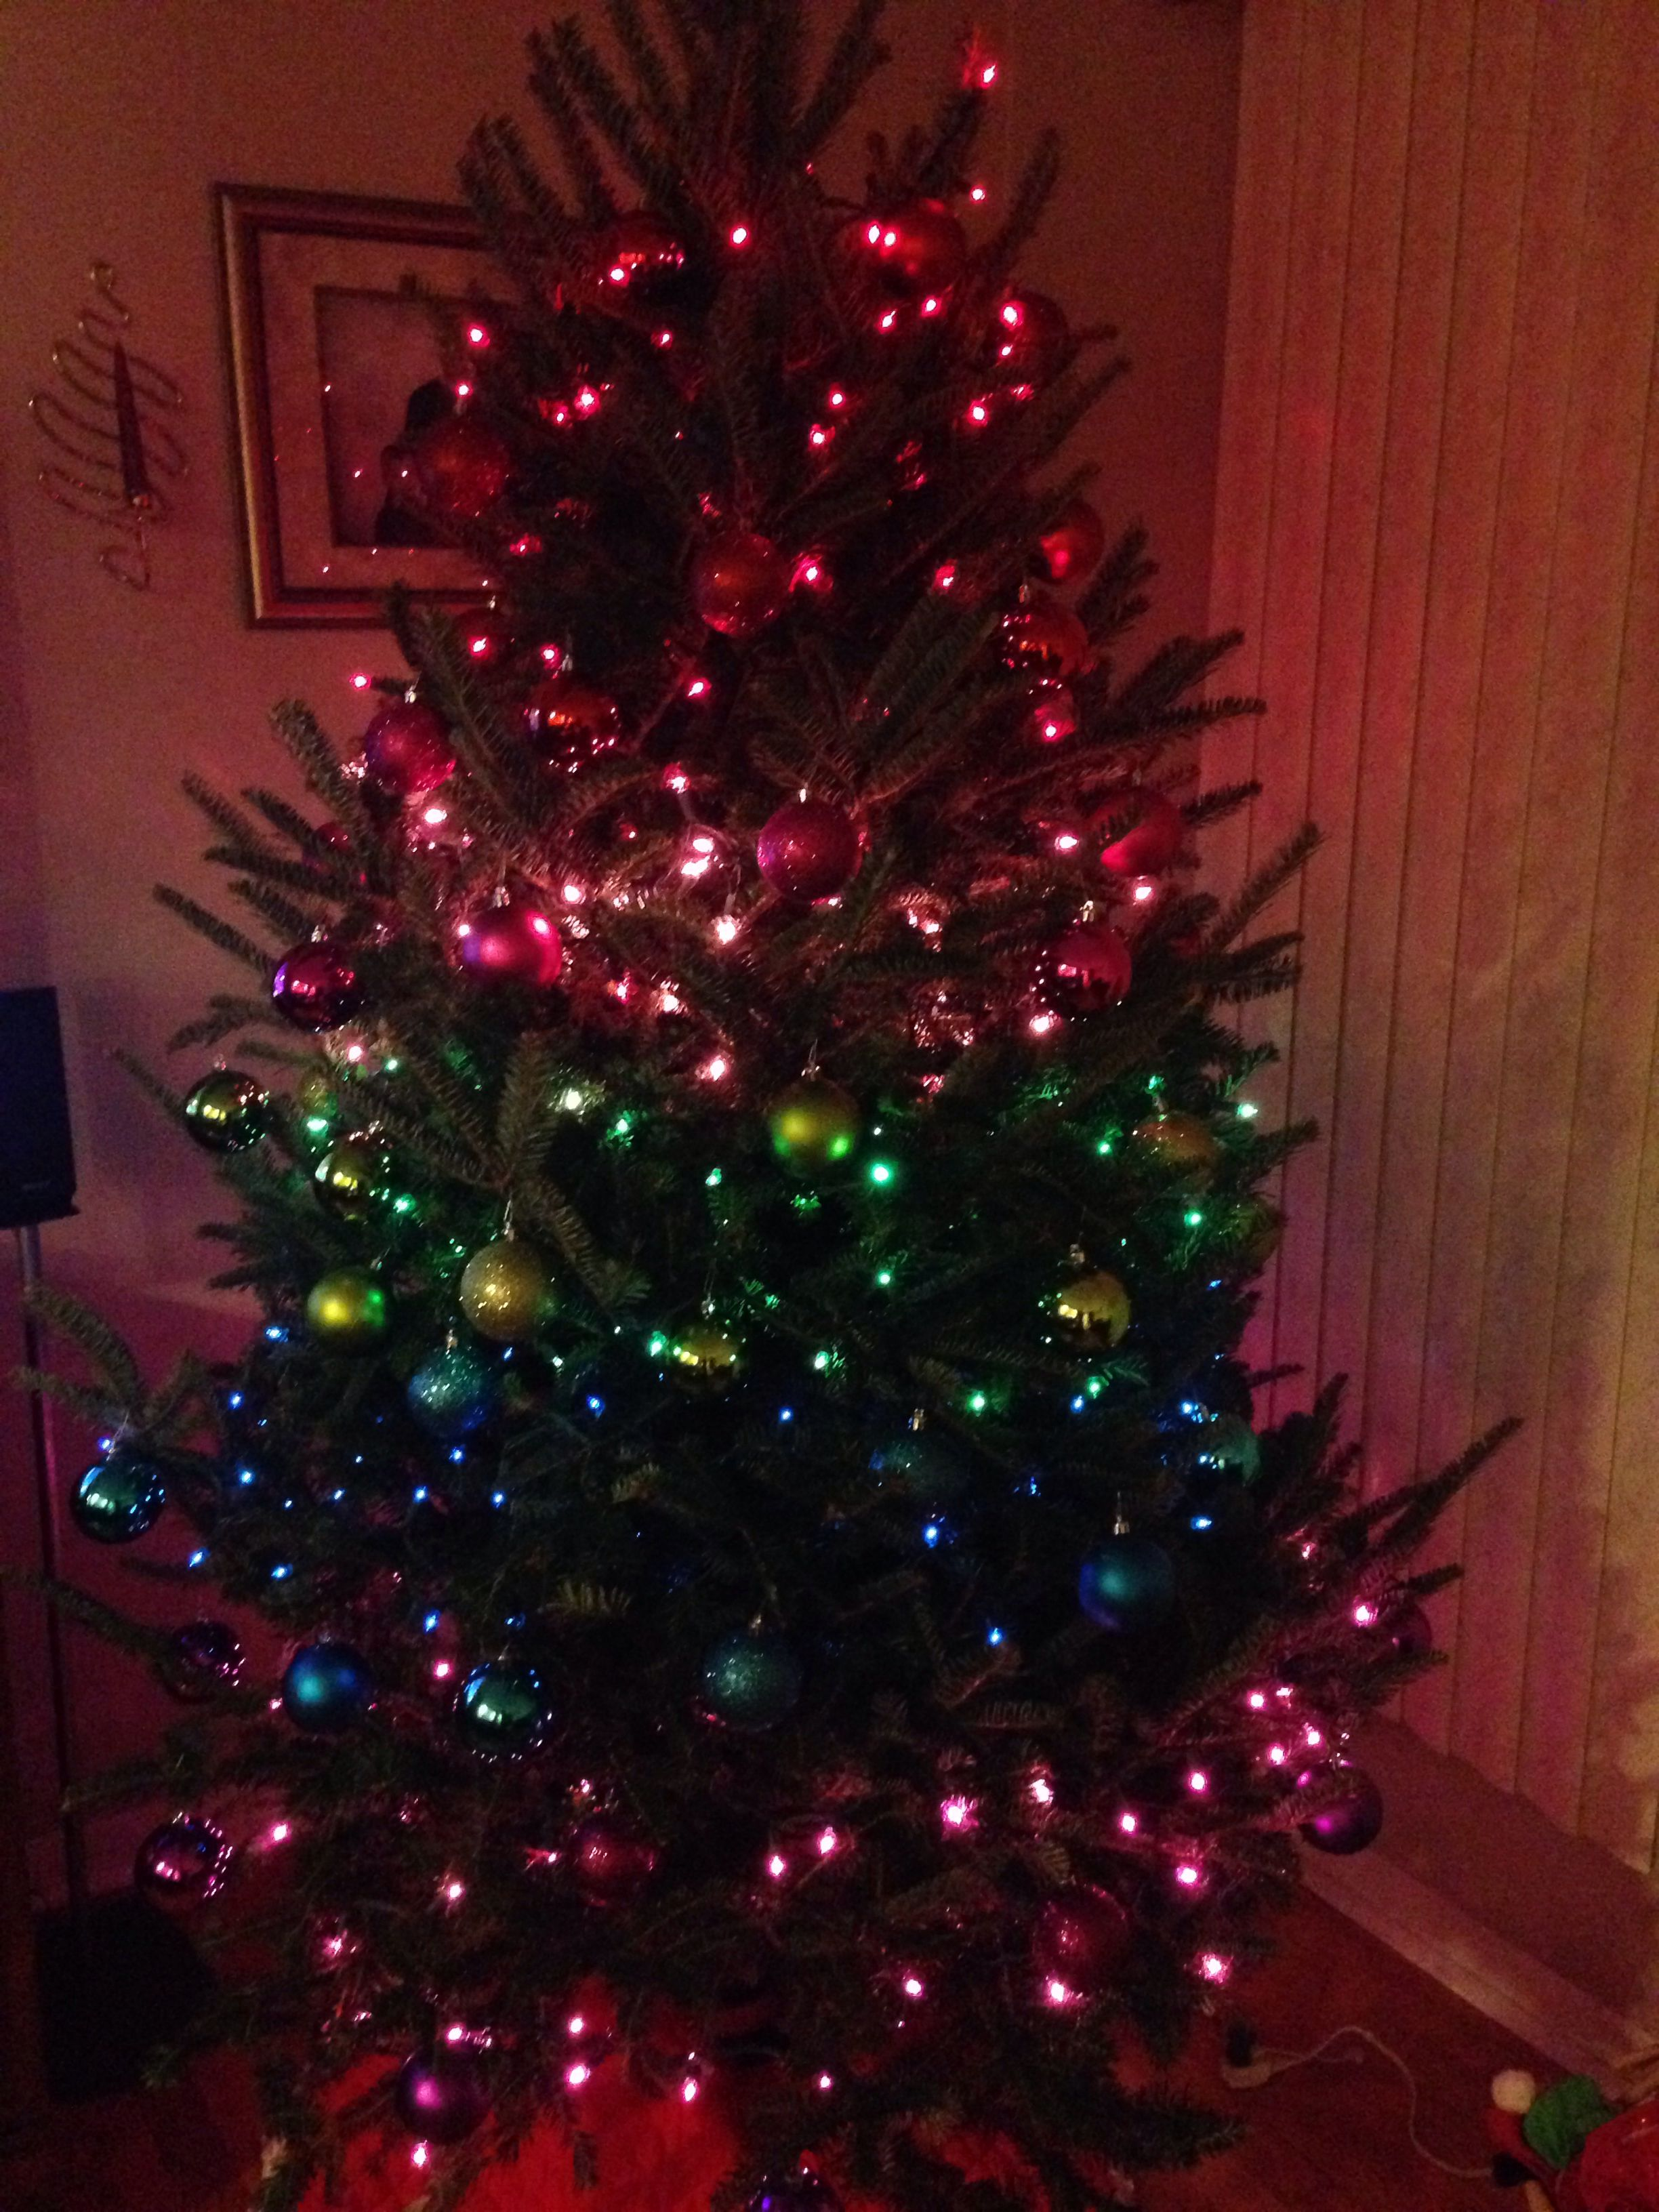 Rainbow Colored Christmas Tree Using Target Ornaments And Lights